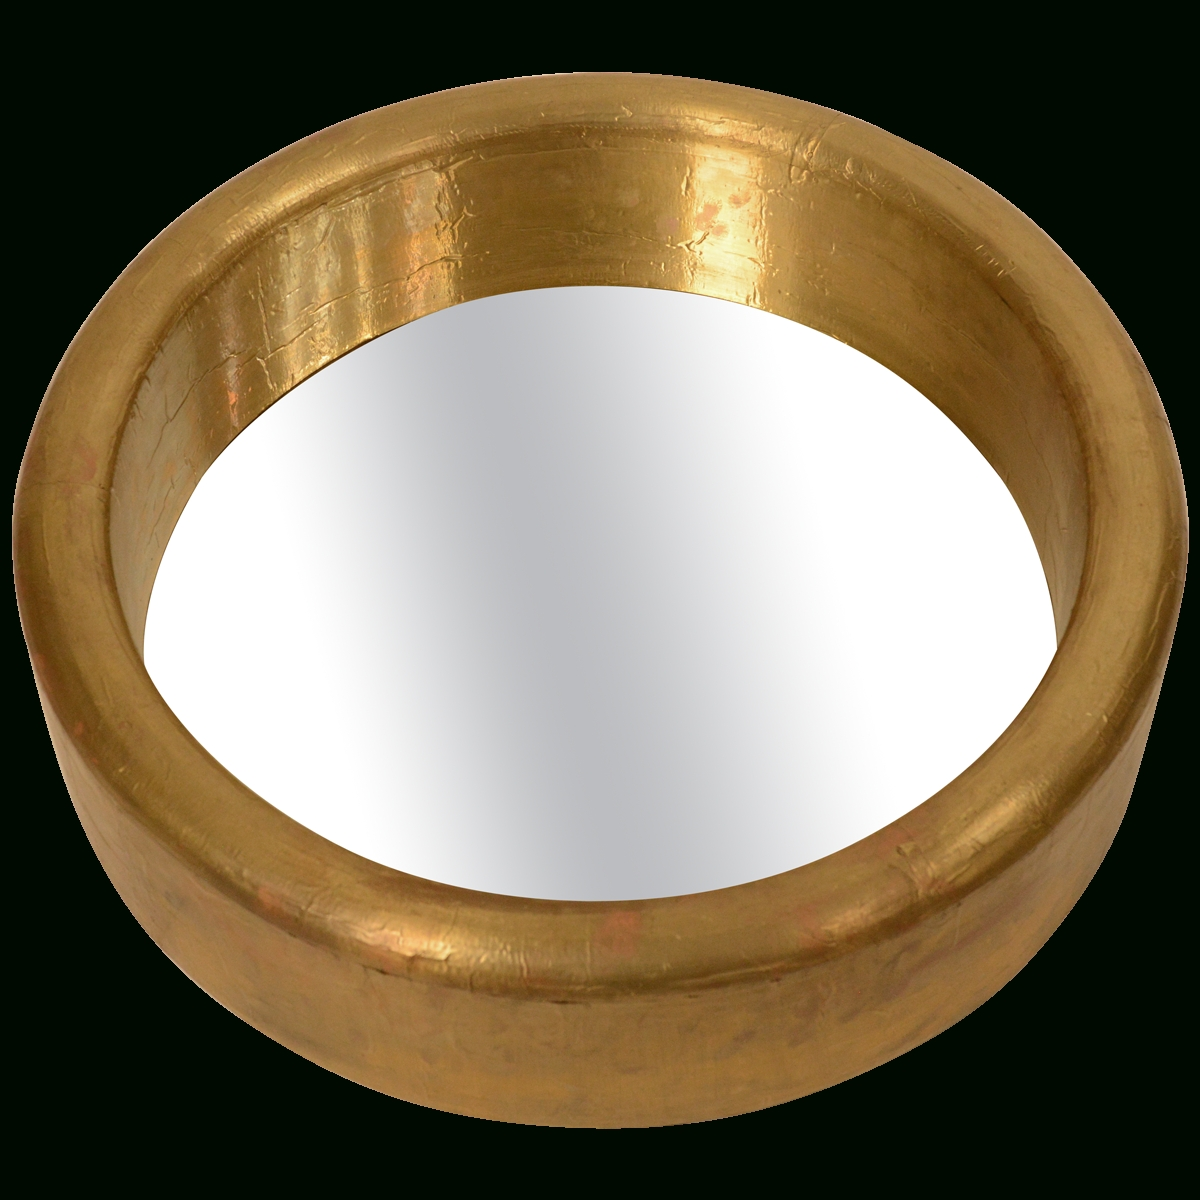 Viyet - Designer Furniture - Accessories - Vintage Brass Foil throughout Porthole Style Mirrors (Image 25 of 25)